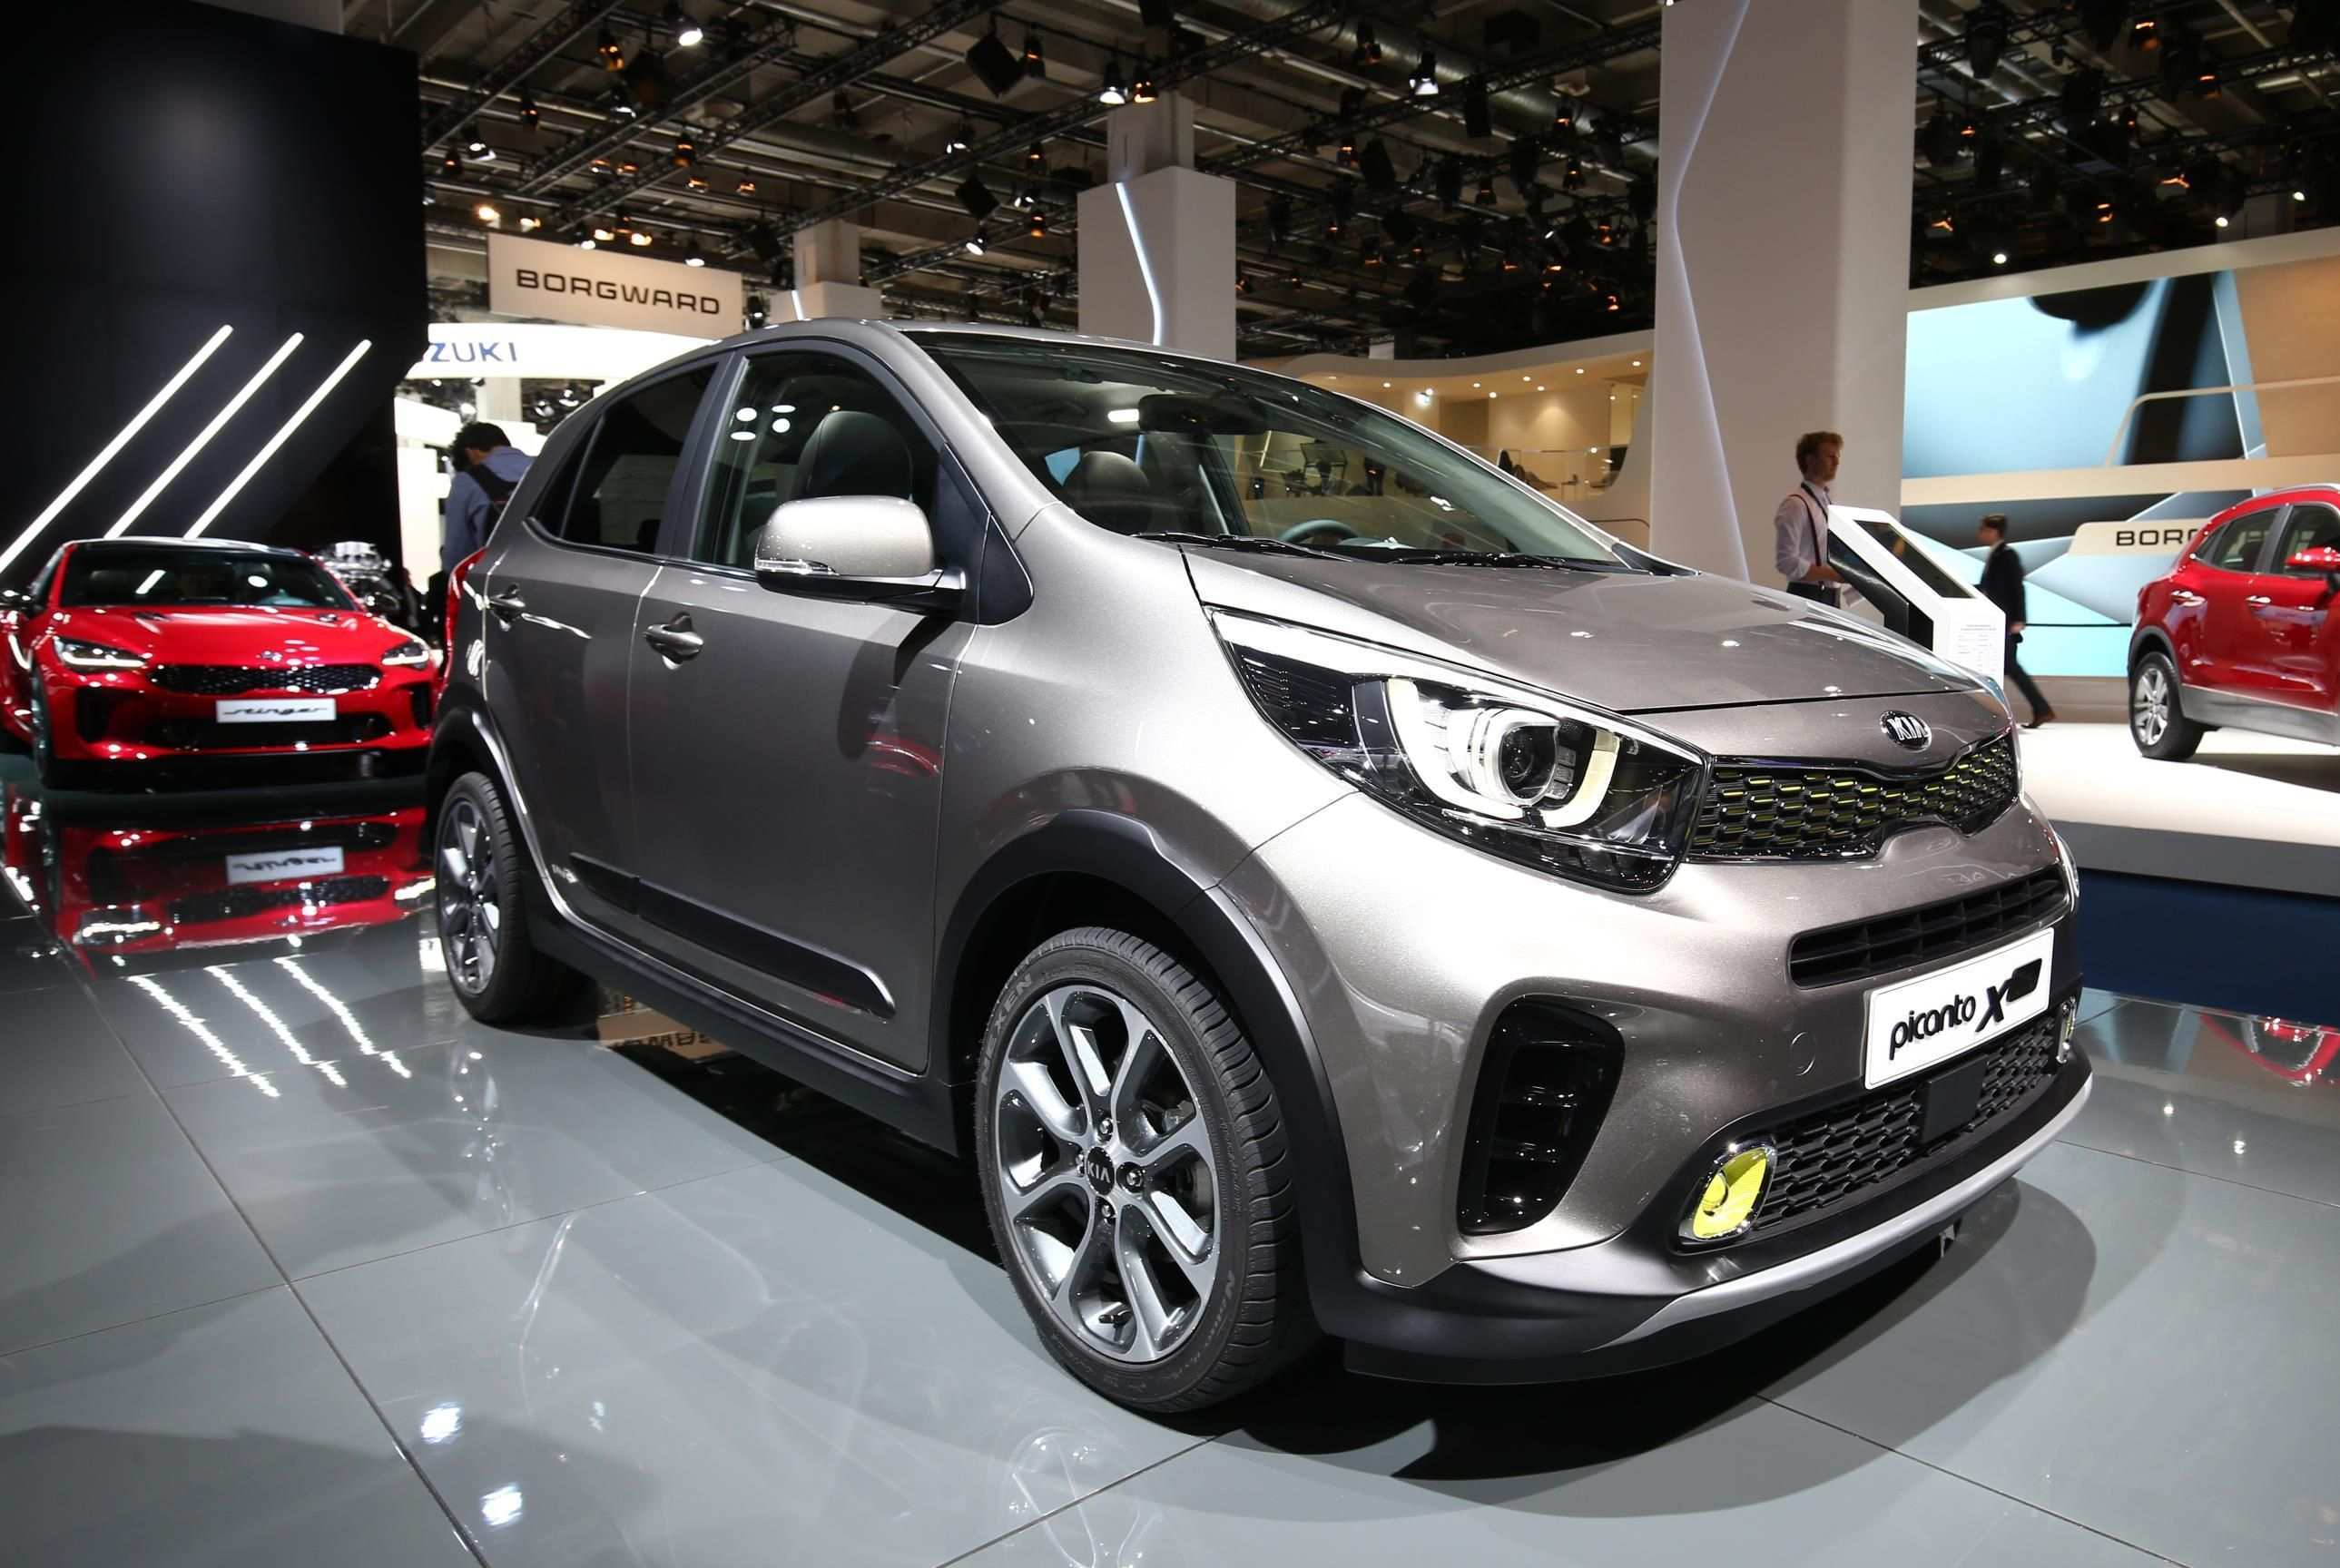 67 Concept of Kia Picanto 2019 Xline Engine by Kia Picanto 2019 Xline